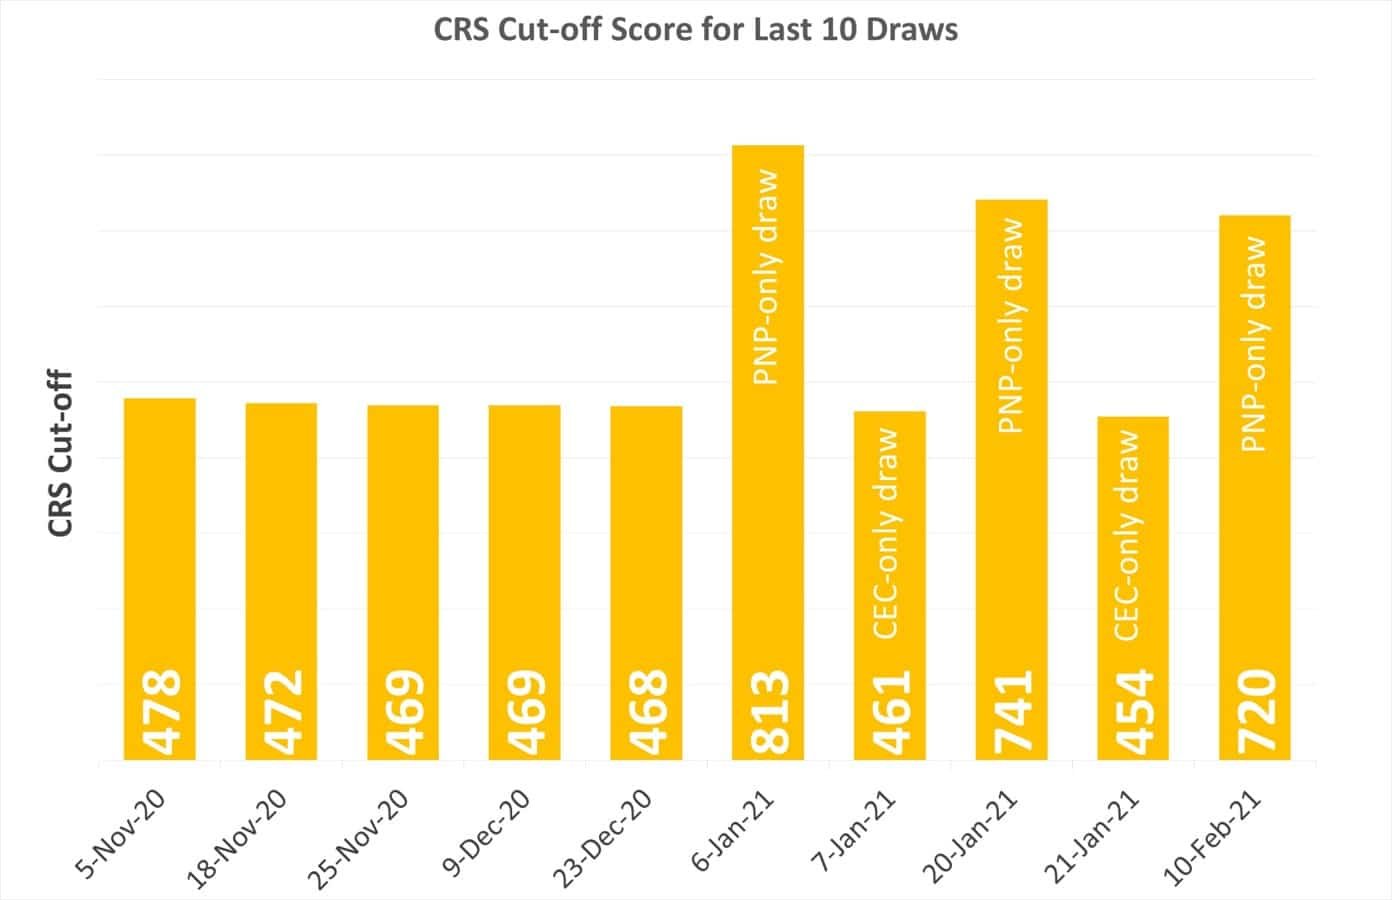 CRS-Cutoff-Score-for-last-10-draws-1